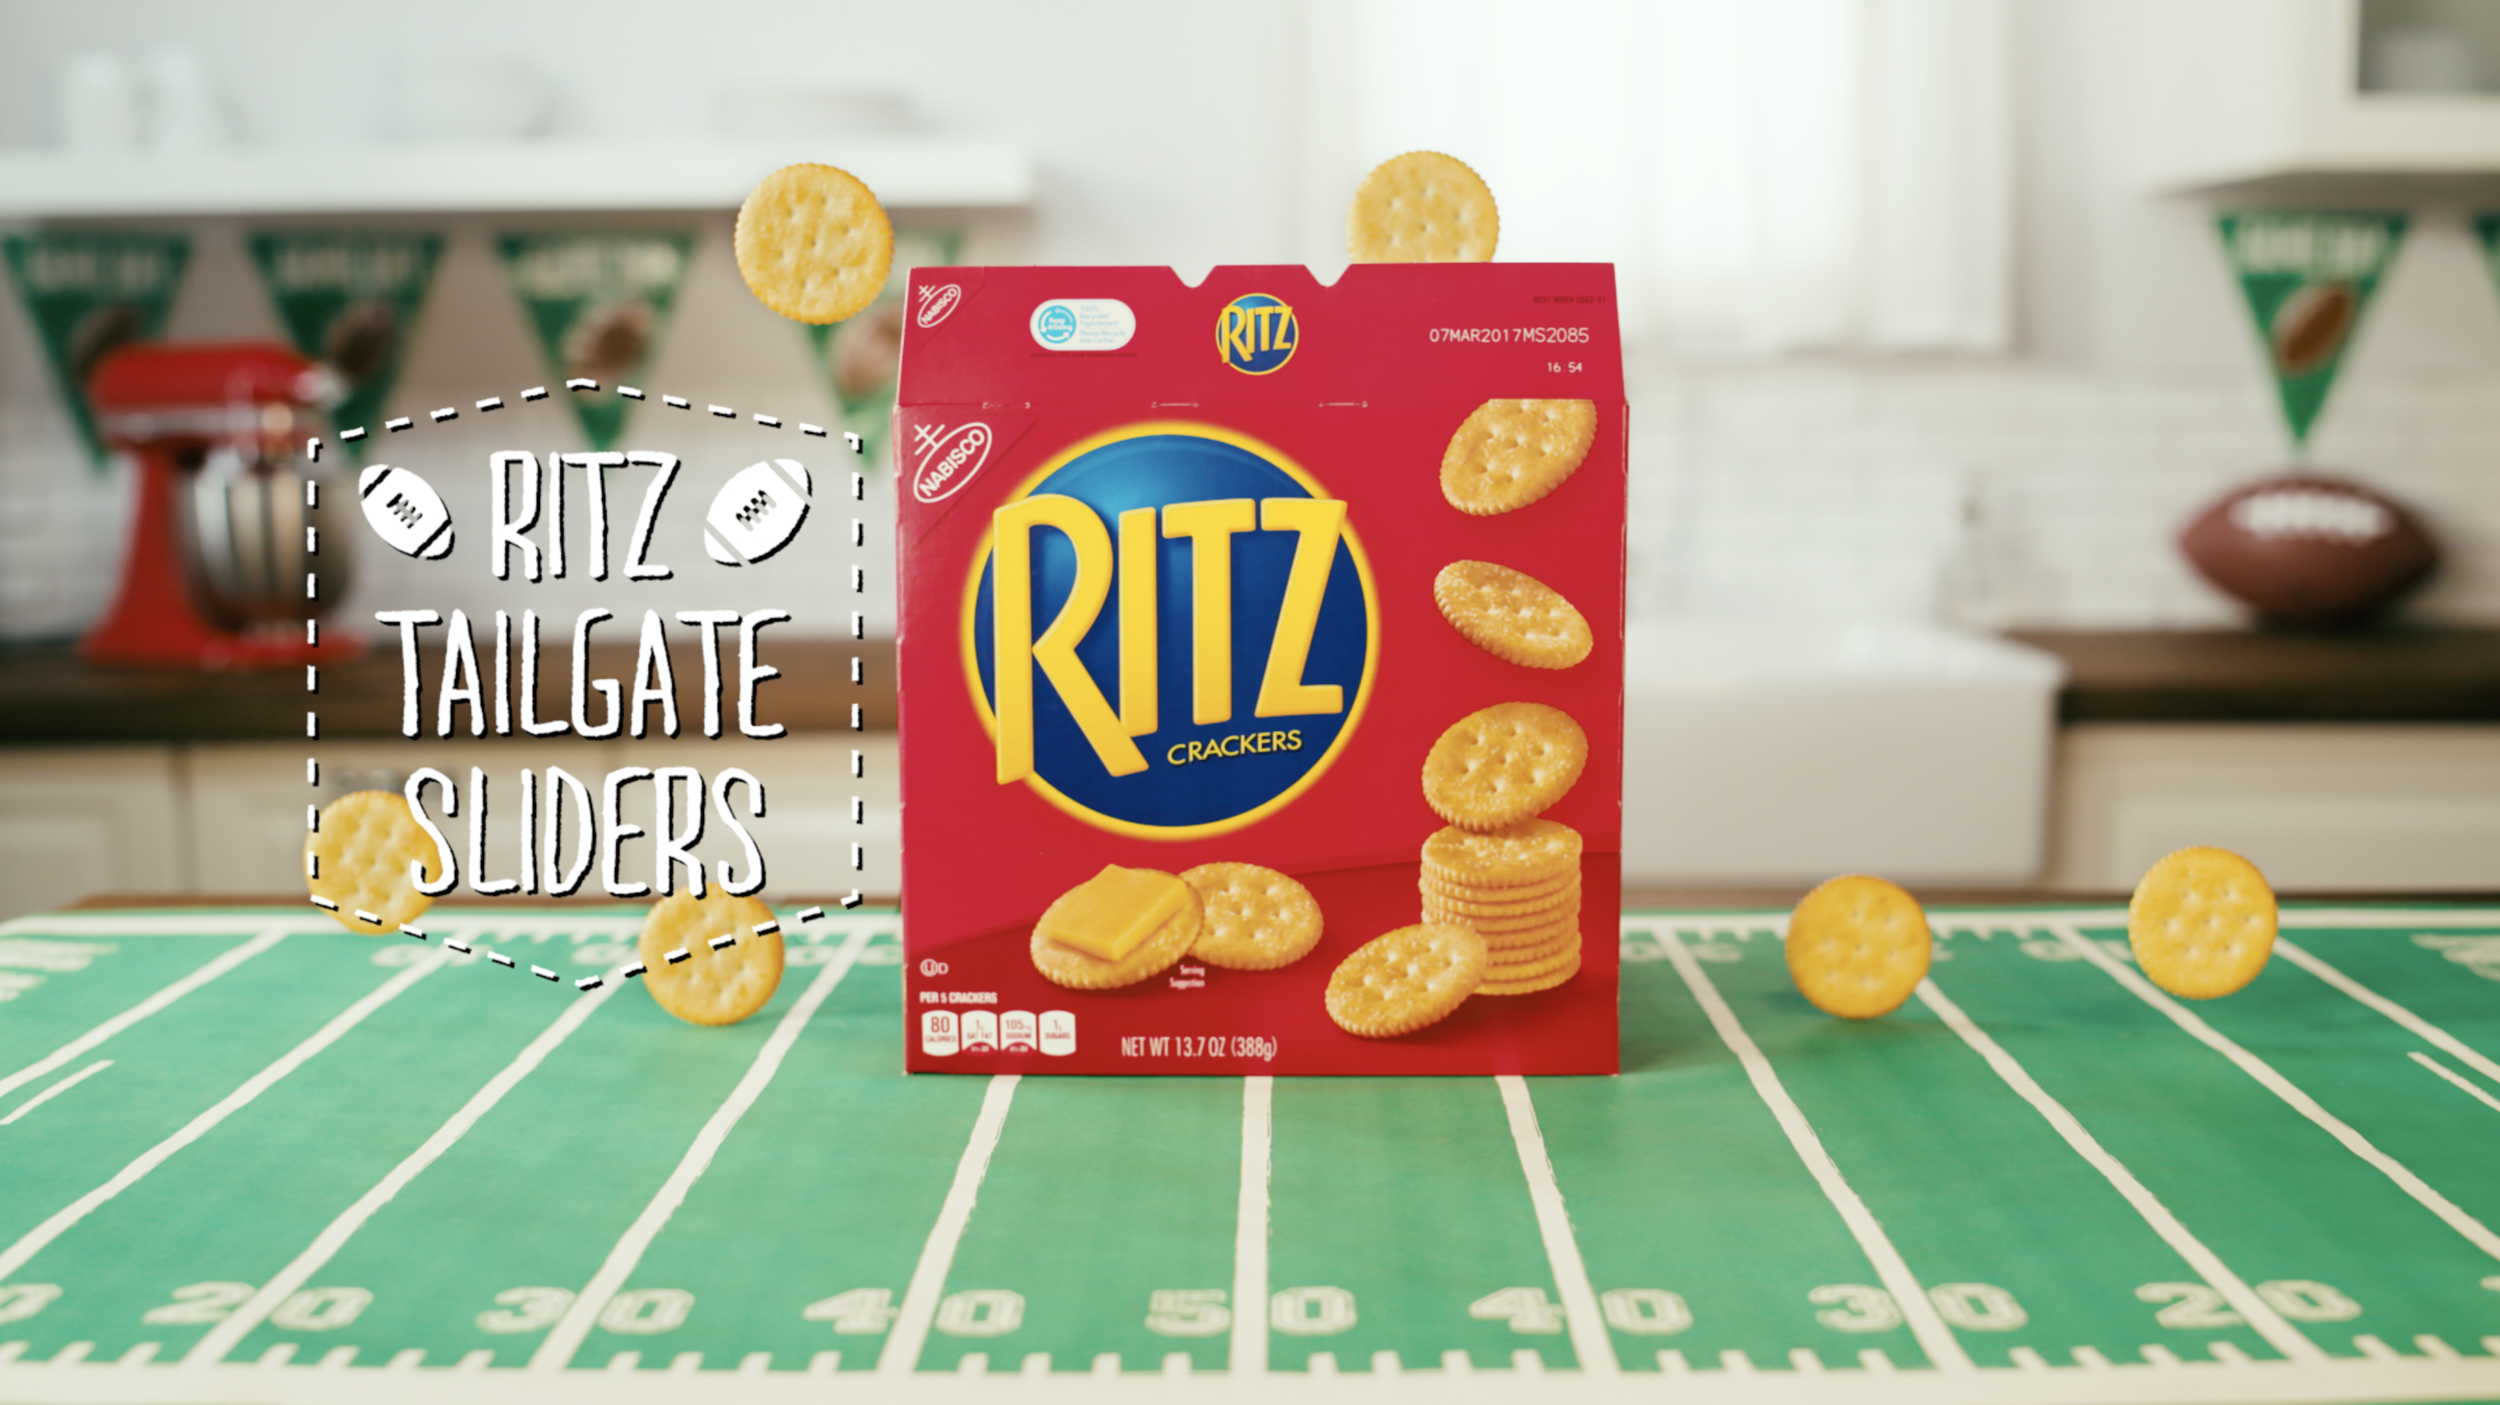 Ritz Crackers - Tailgate Sliders